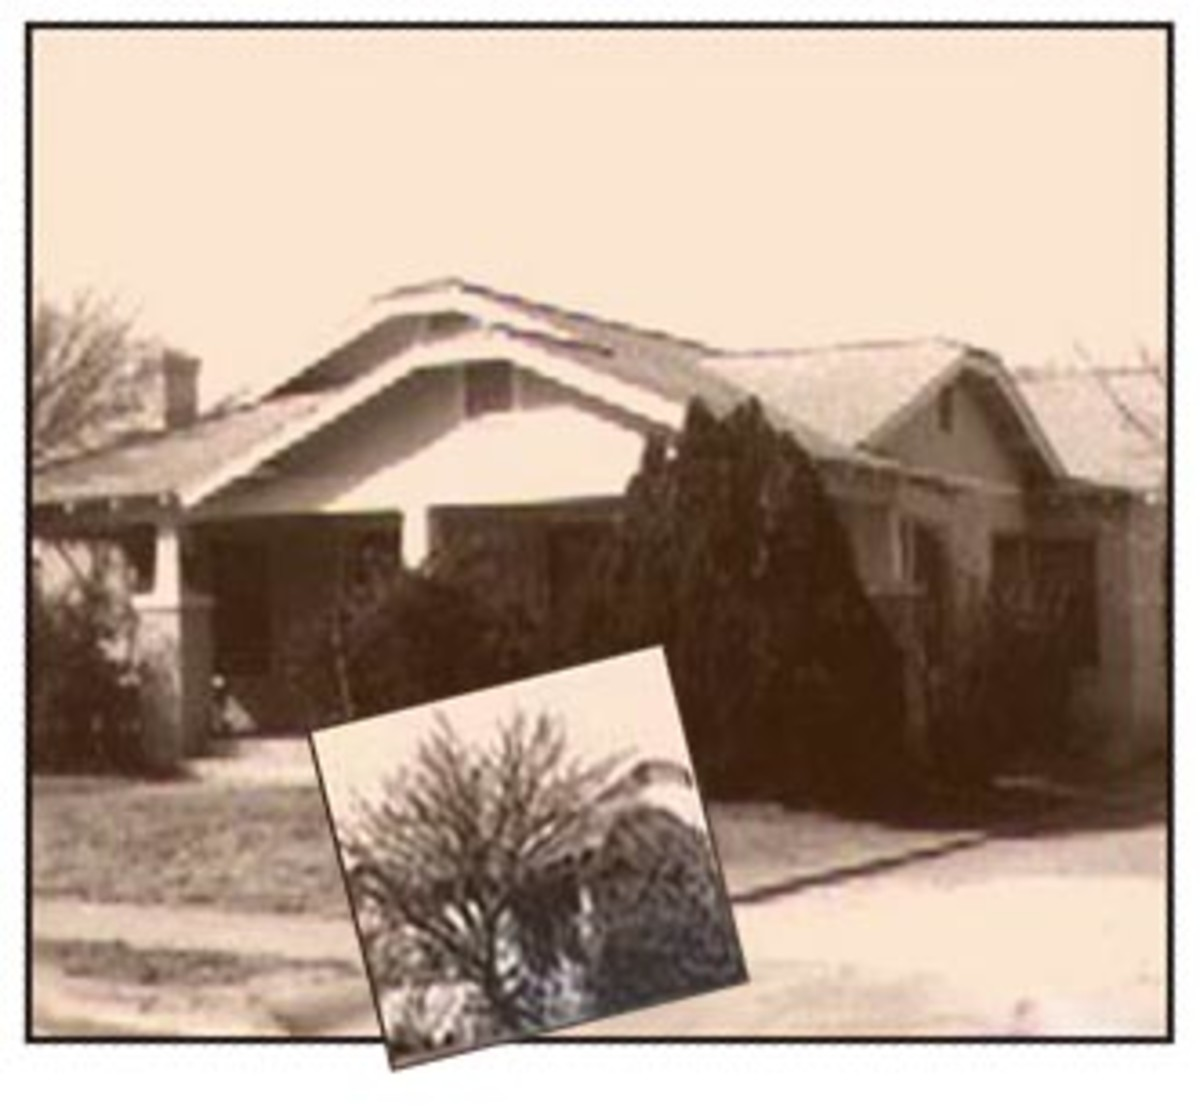 1120 Pecos St. with apricot tree - wintertime